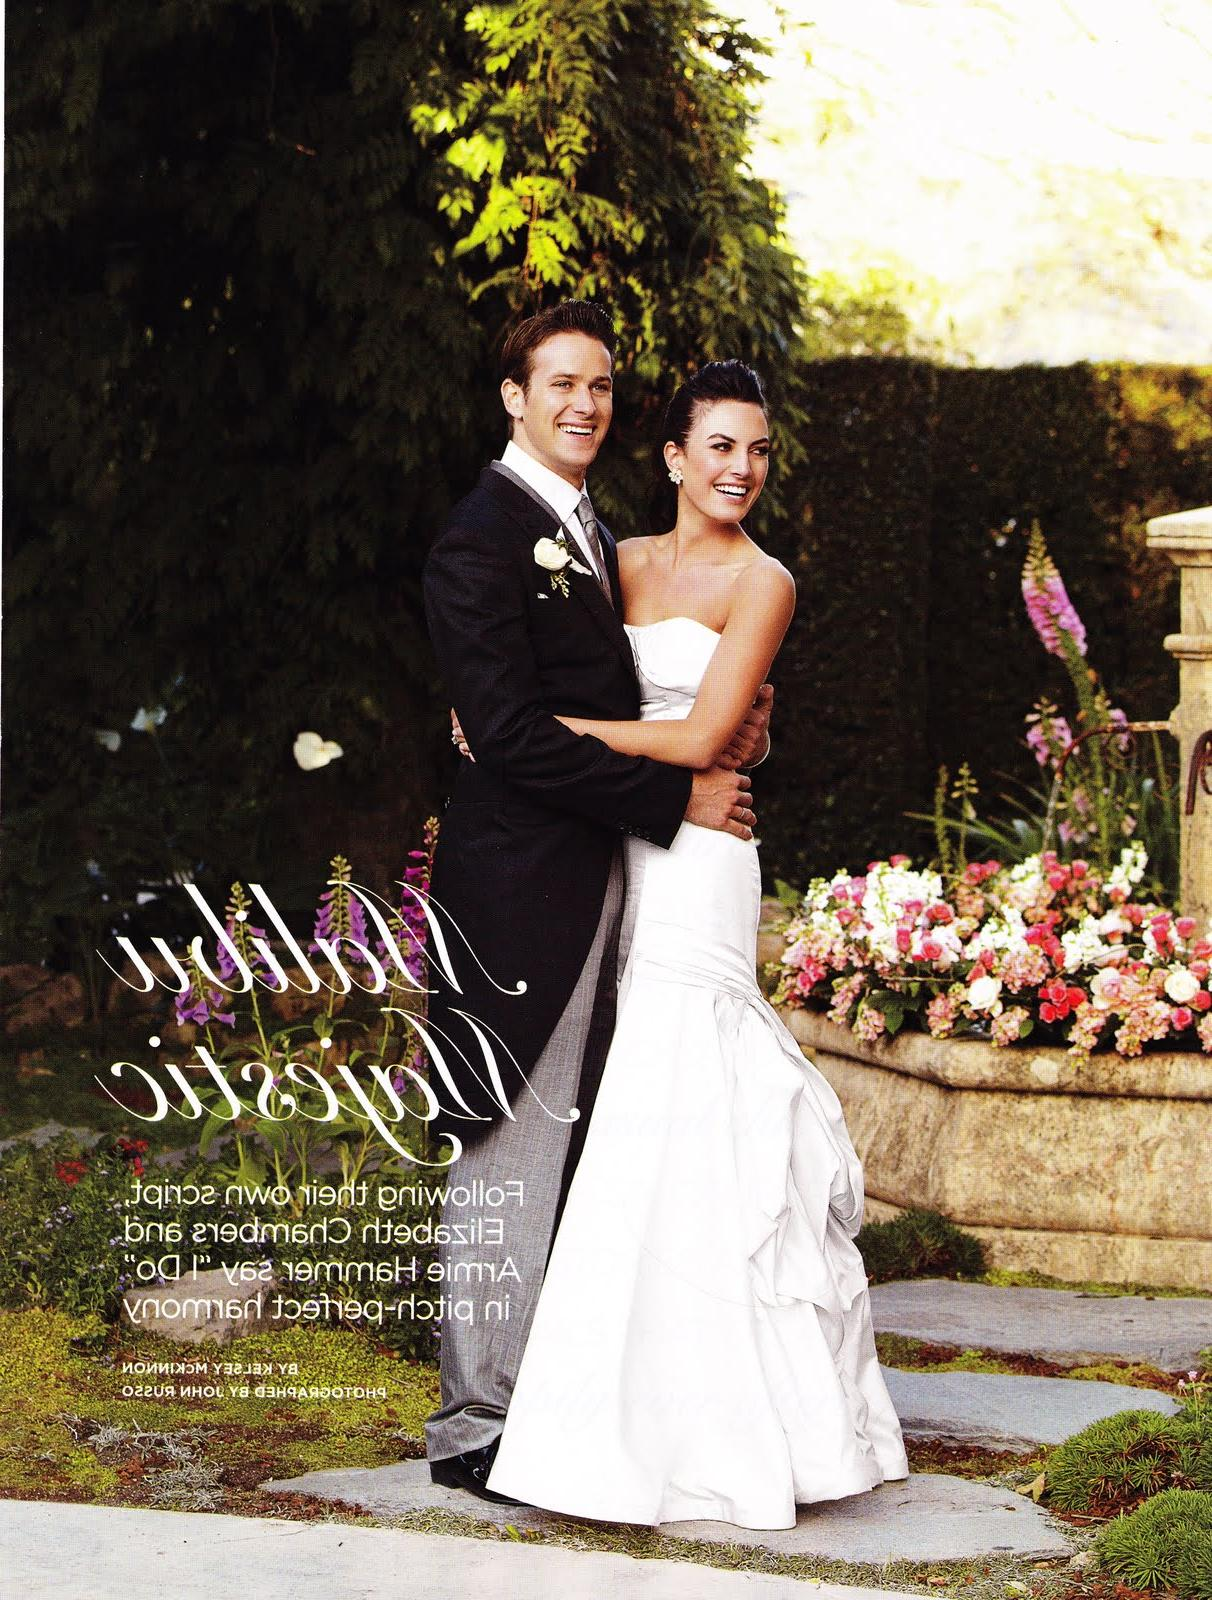 copy of your wedding issue